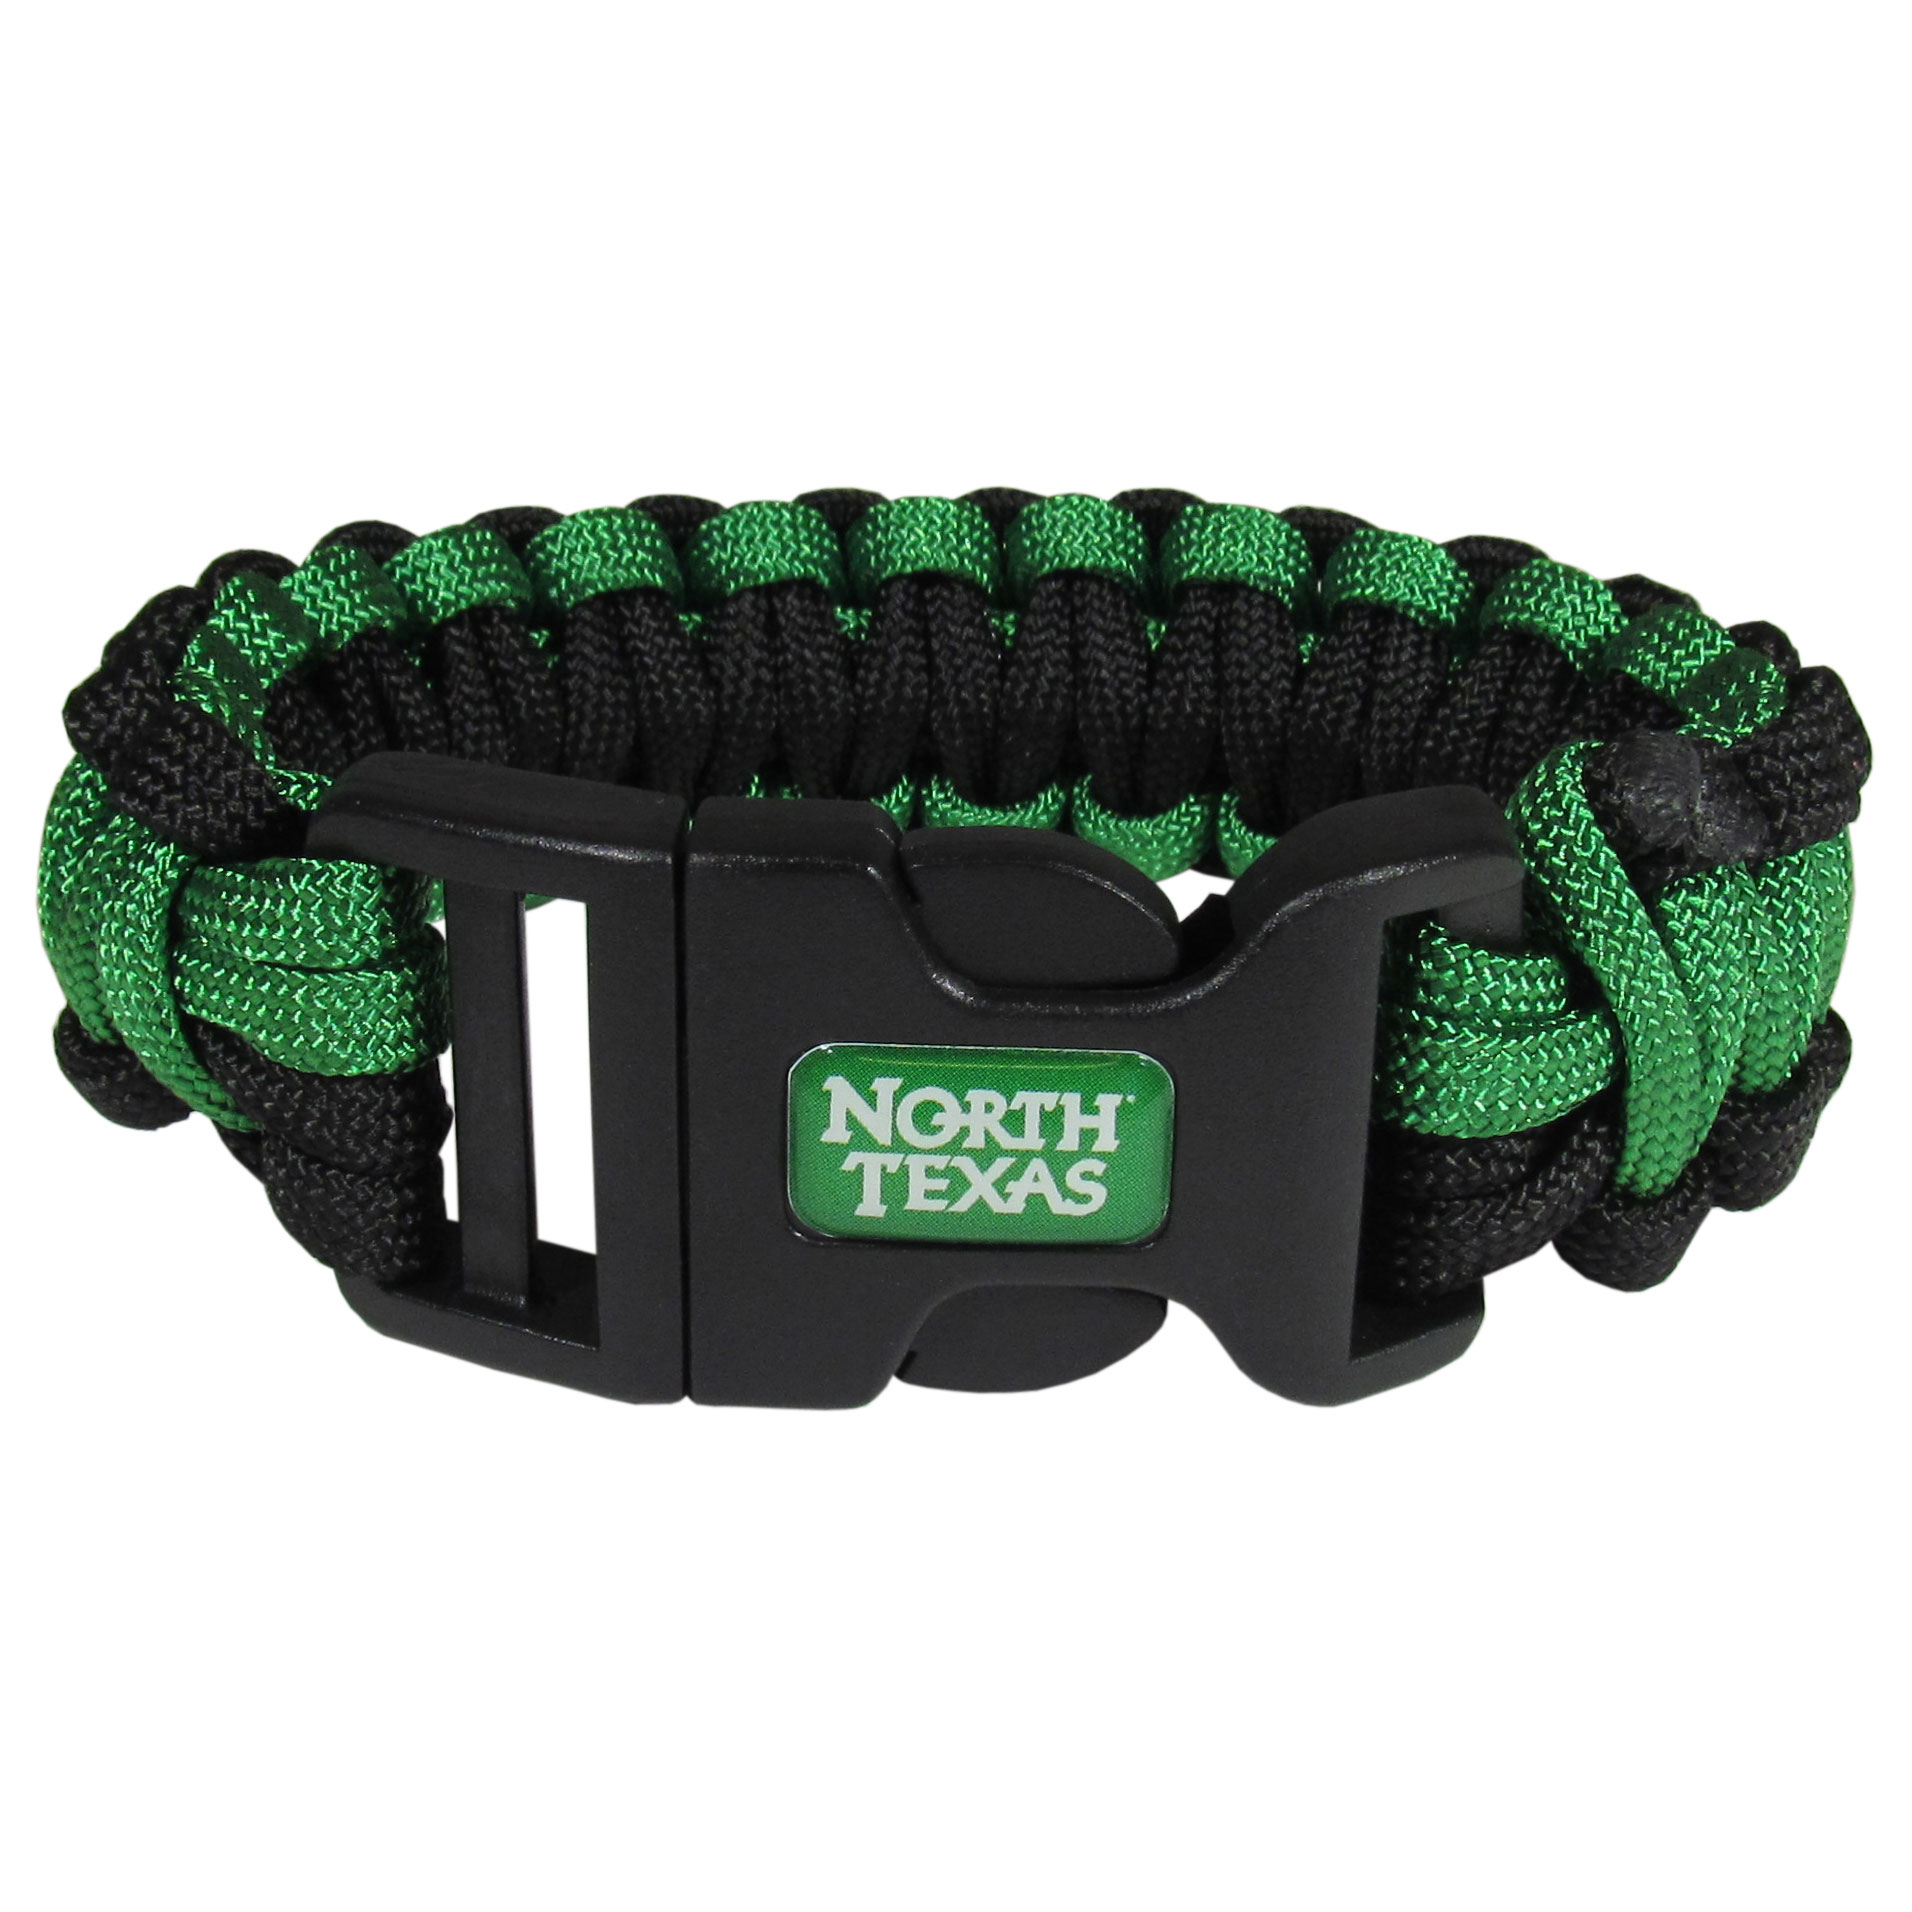 North Texas Mean Green Survivor Bracelet - Our functional and fashionable North Texas Mean Green survivor bracelets contain 2 individual 300lb test paracord rated cords that are each 5 feet long. The team colored cords can be pulled apart to be used in any number of emergencies and look great while worn. The bracelet features a team emblem on the clasp.